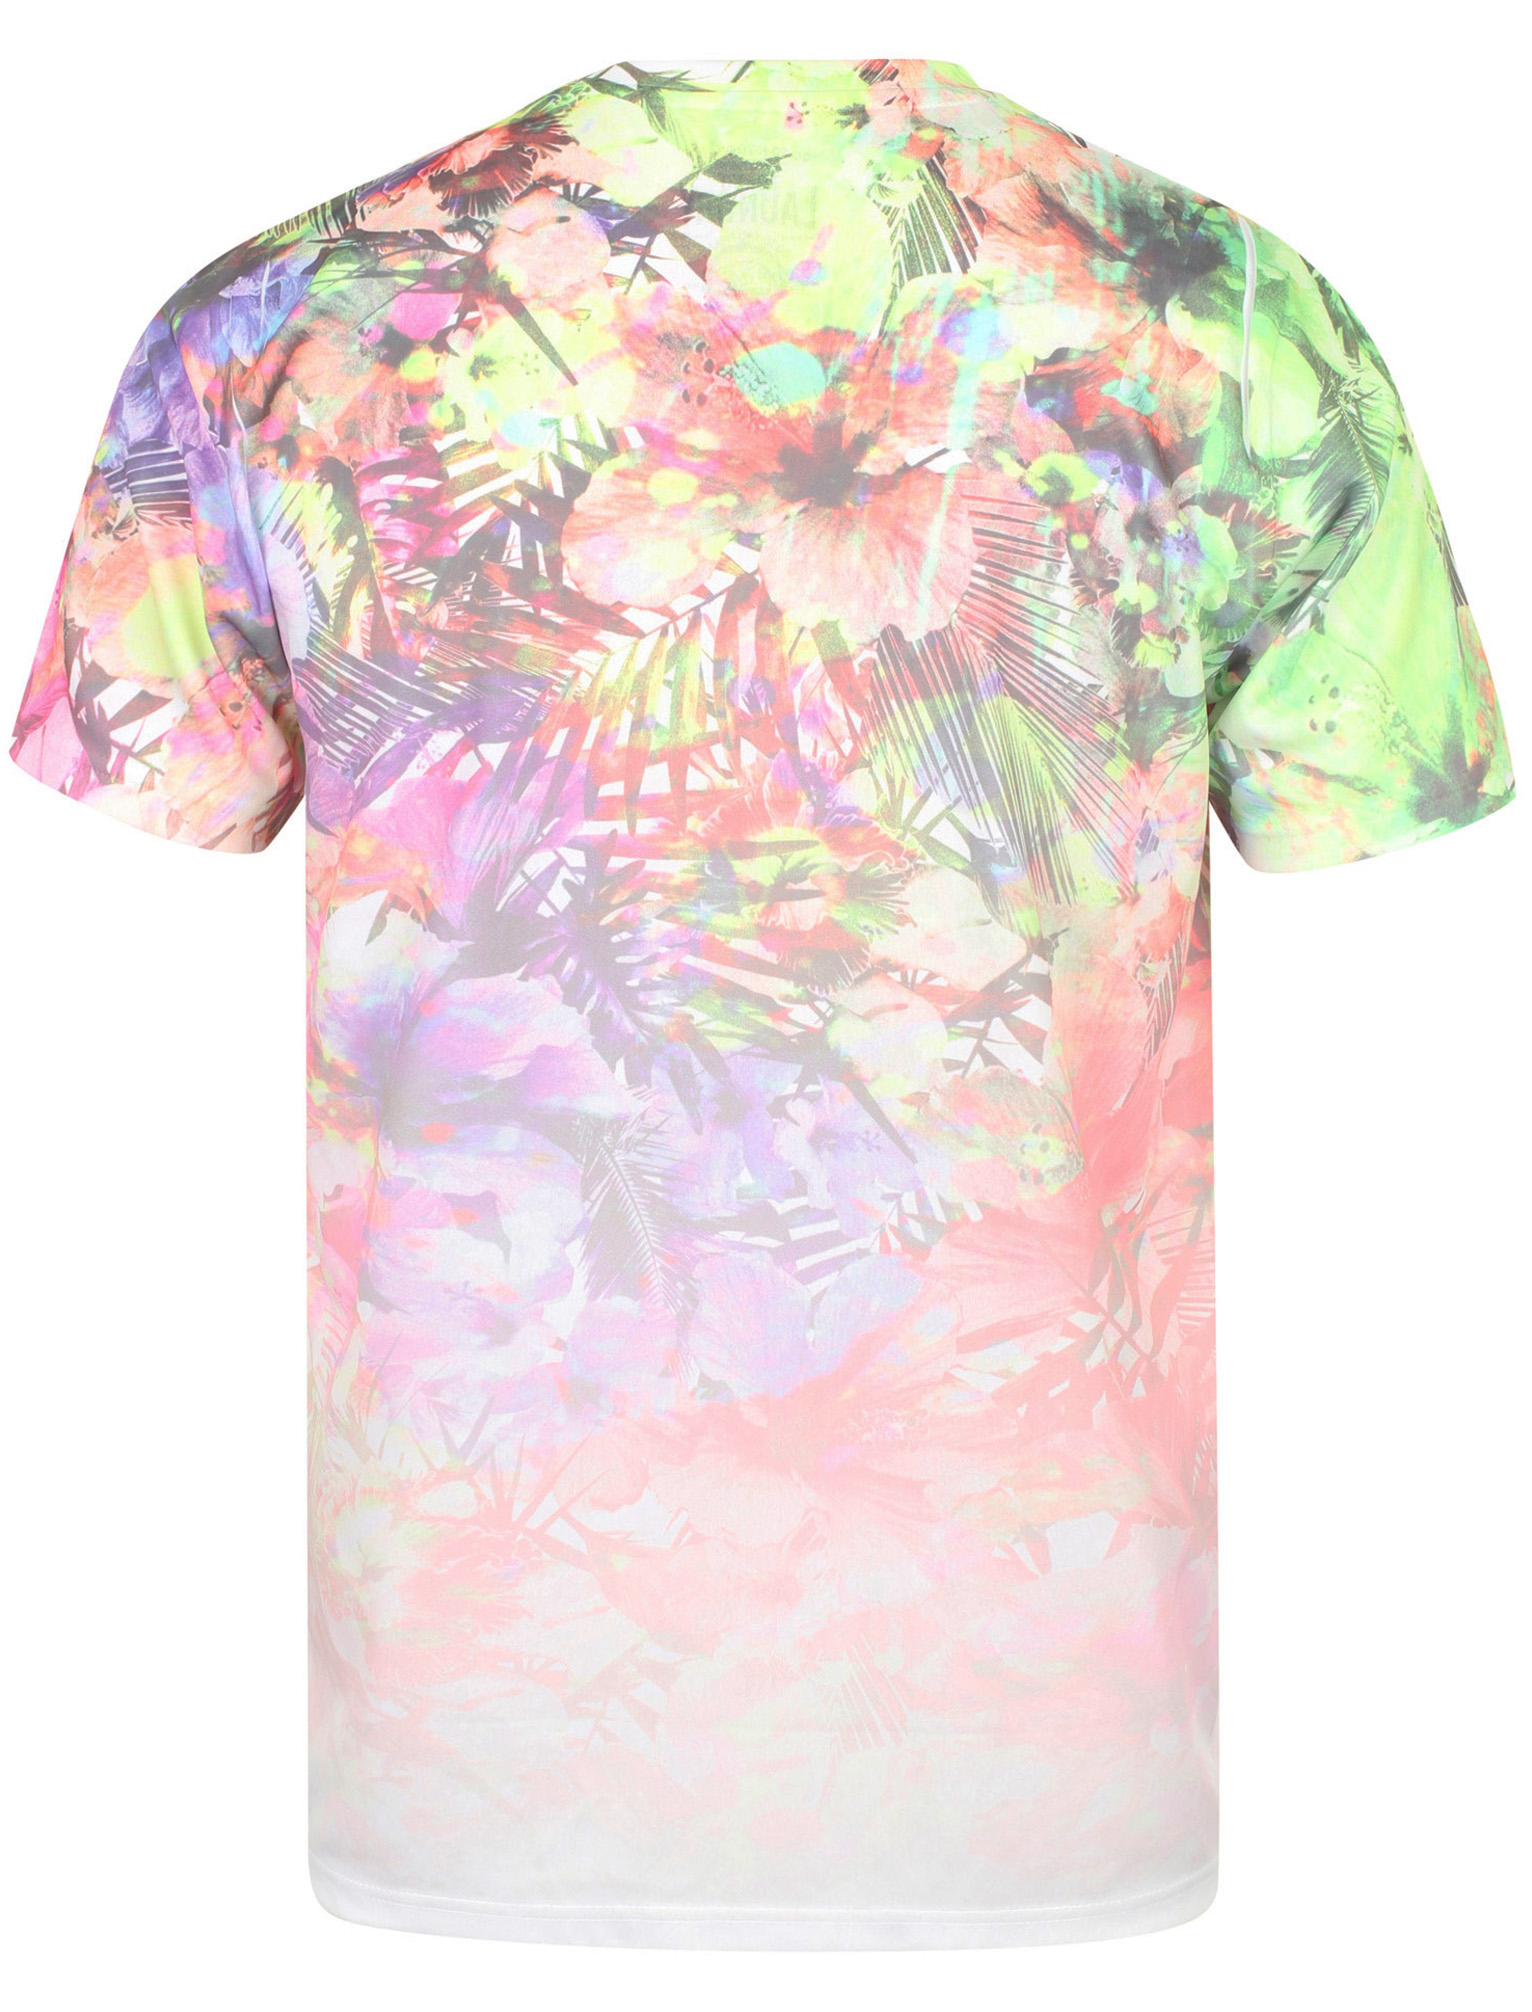 Tokyo-Laundry-Men-039-s-Tropical-Sublimation-Print-Summer-T-Shirt-Holiday-Floral-New thumbnail 3